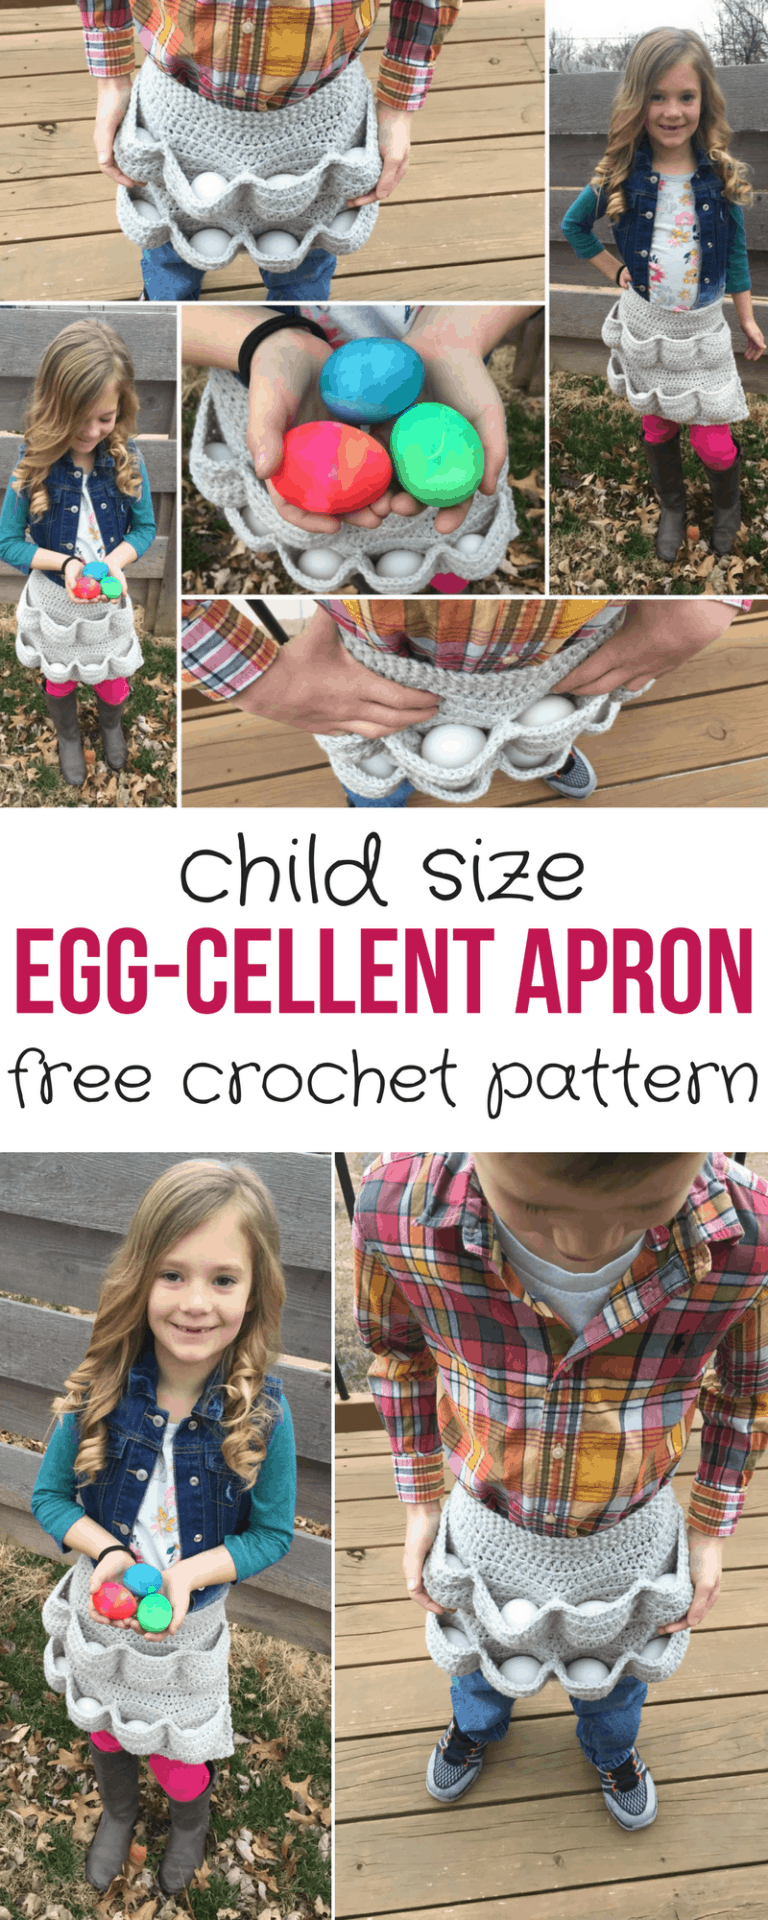 Egg-cellent Child Size Egg Gathering Apron